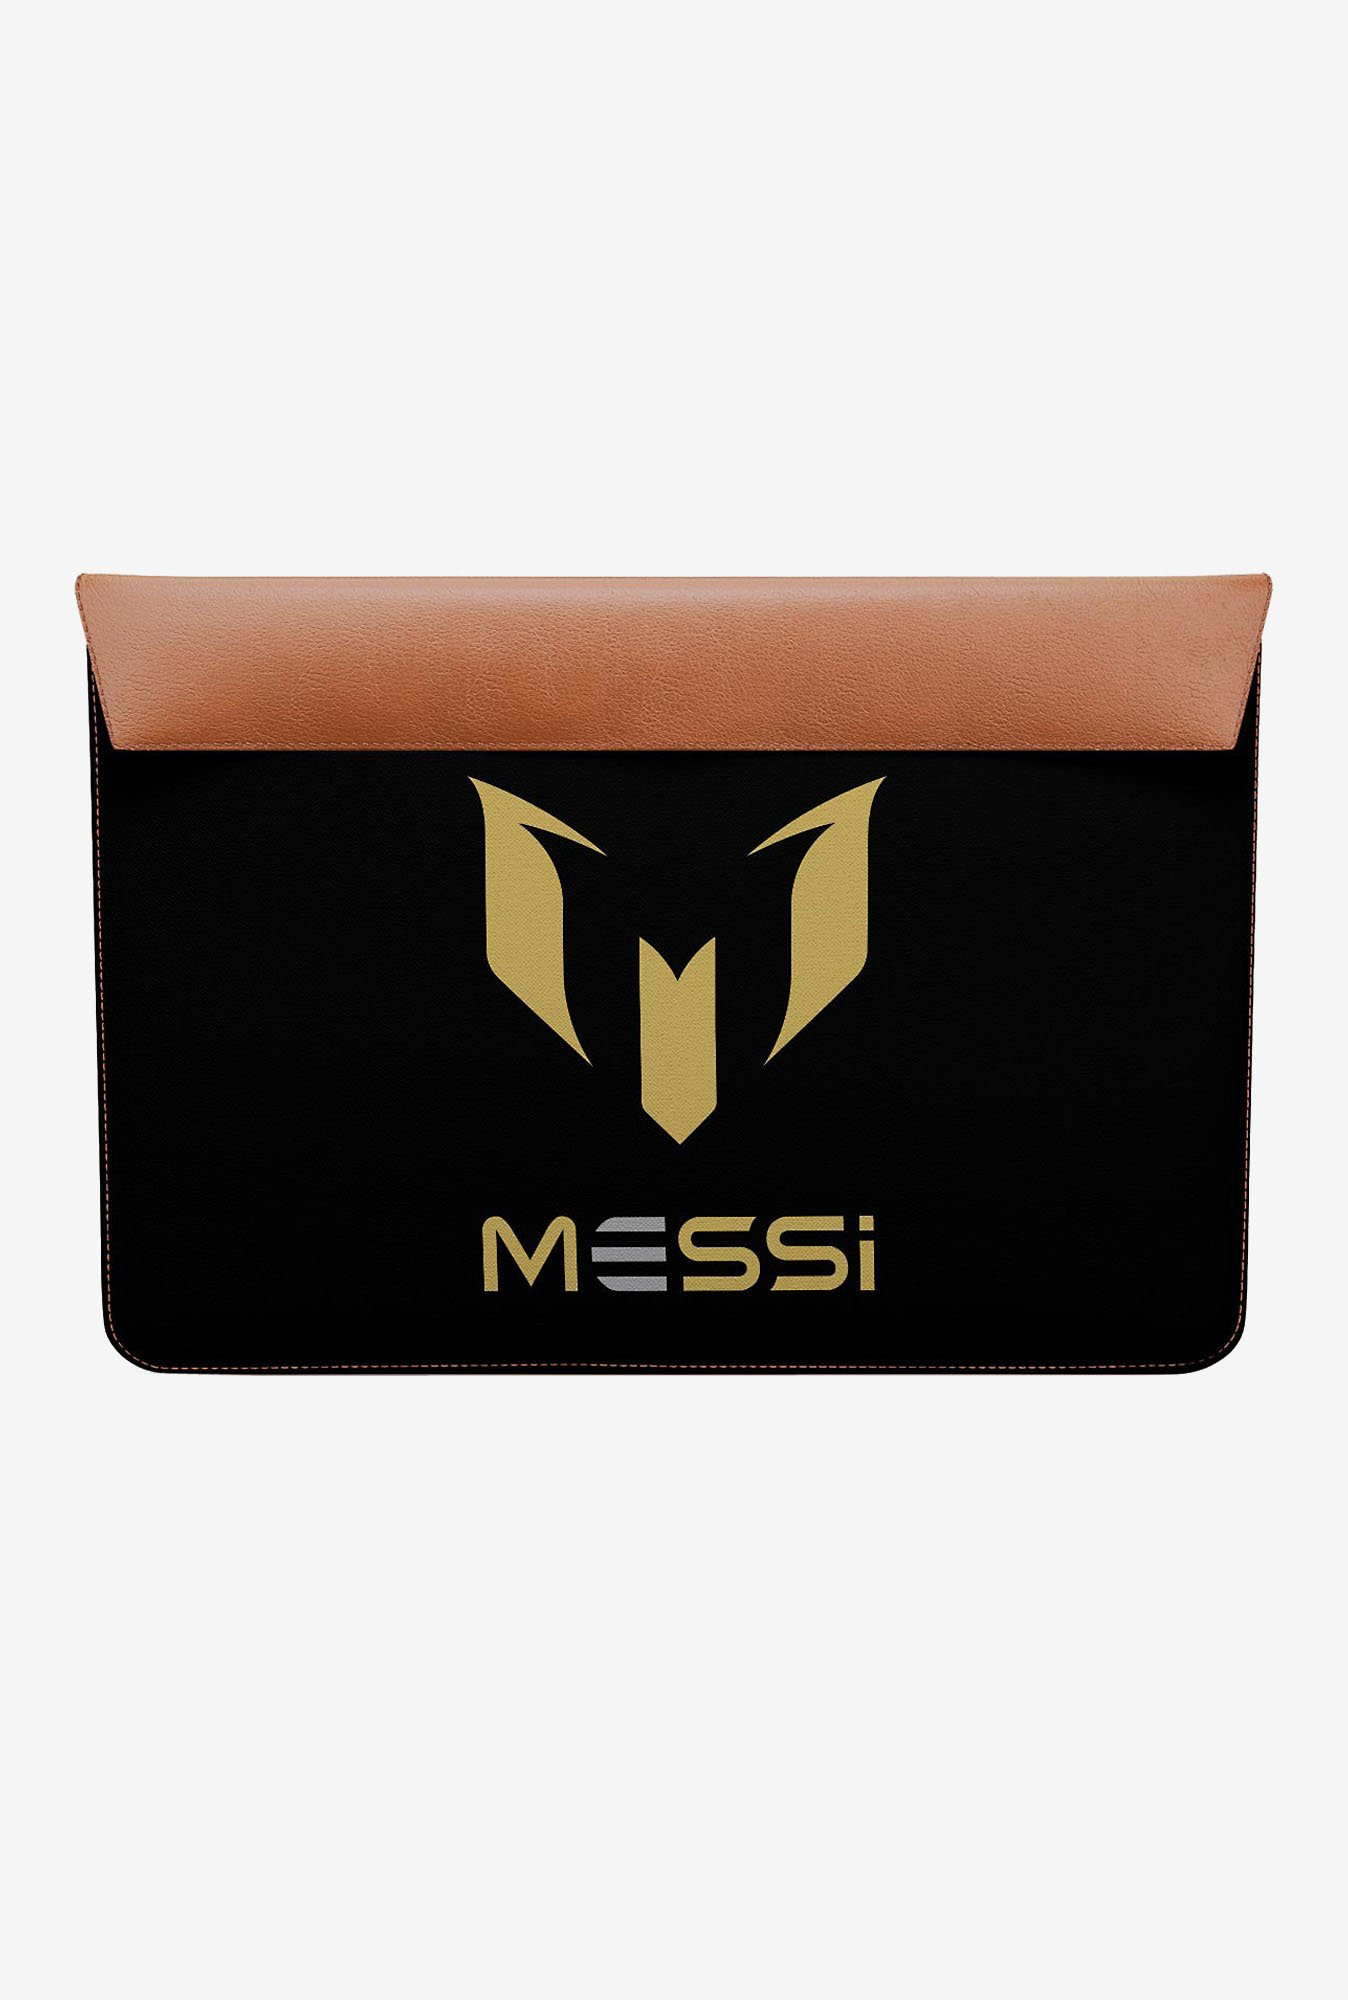 DailyObjects Messi Black MacBook Air 13 Envelope Sleeve